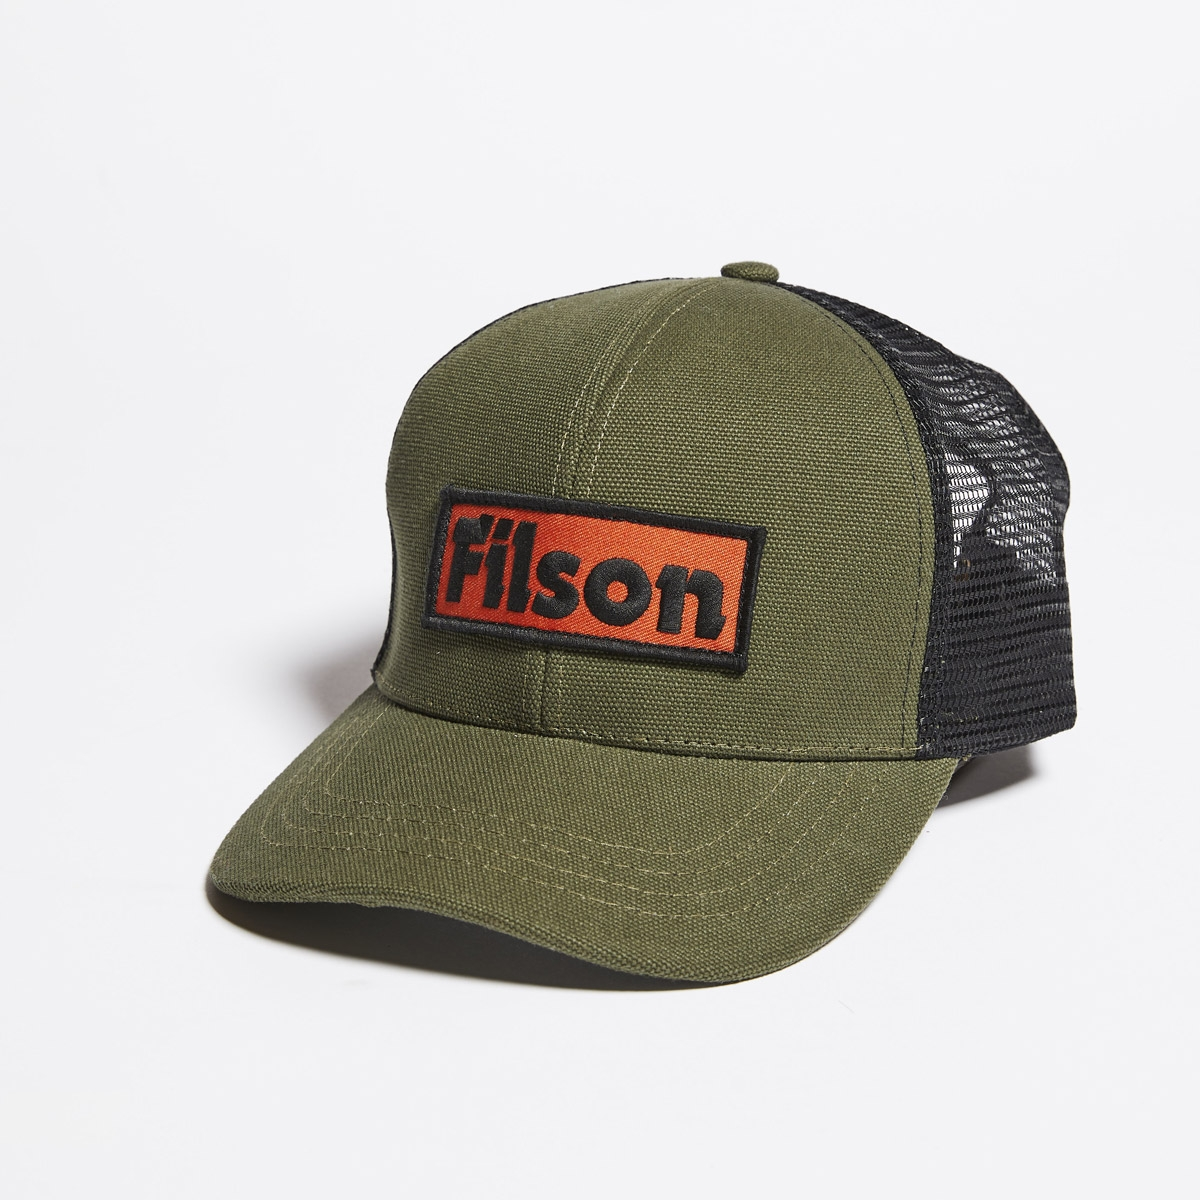 Filson Mesh Logger Cap 20157137-Olive, durable cap with breathable sun protection